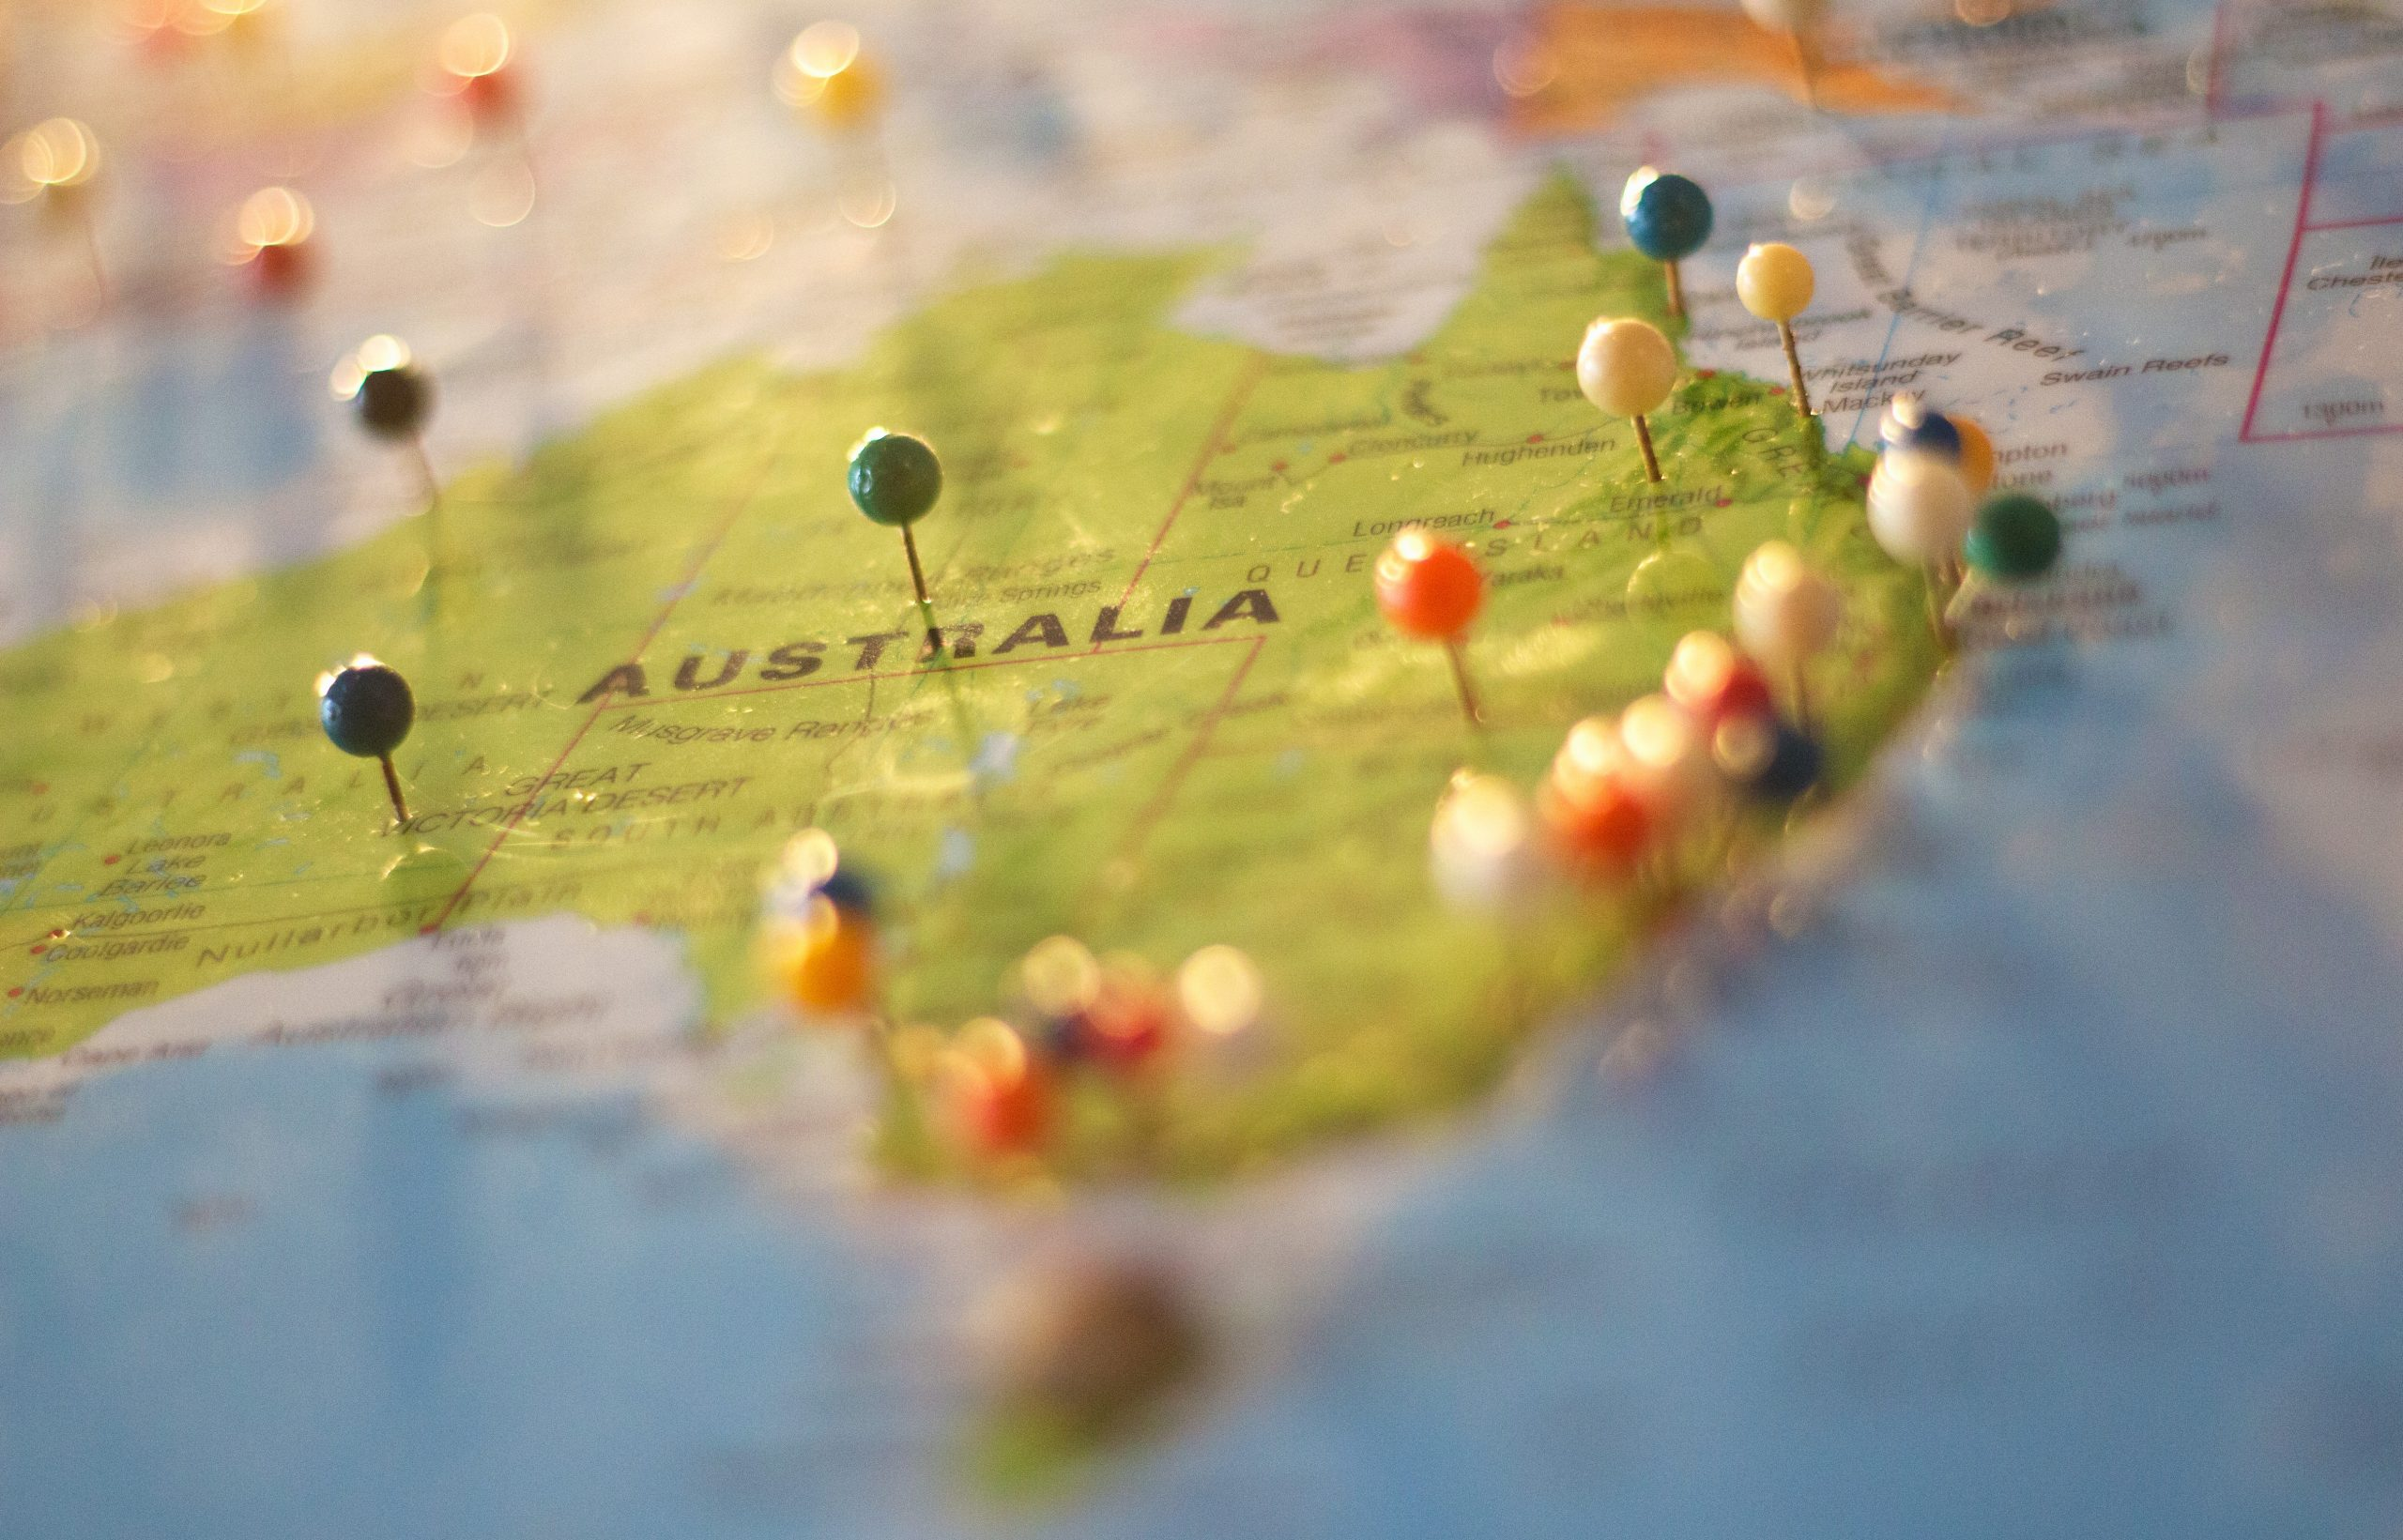 Communism down under: The fate of Australia - The Hot Mess Press